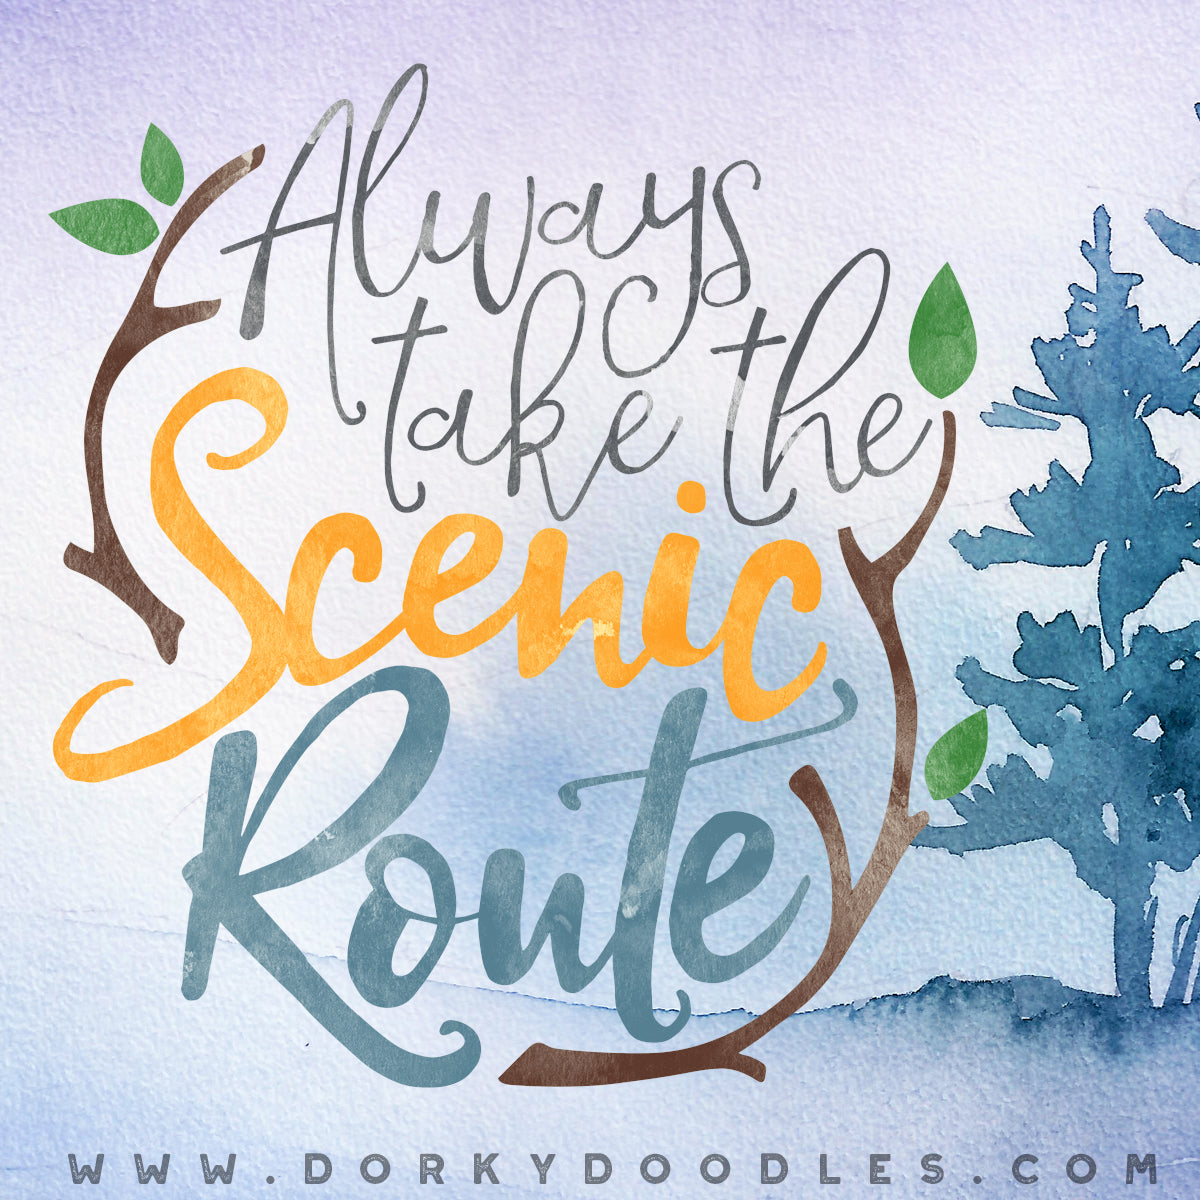 always take the scenic route - motivational monday